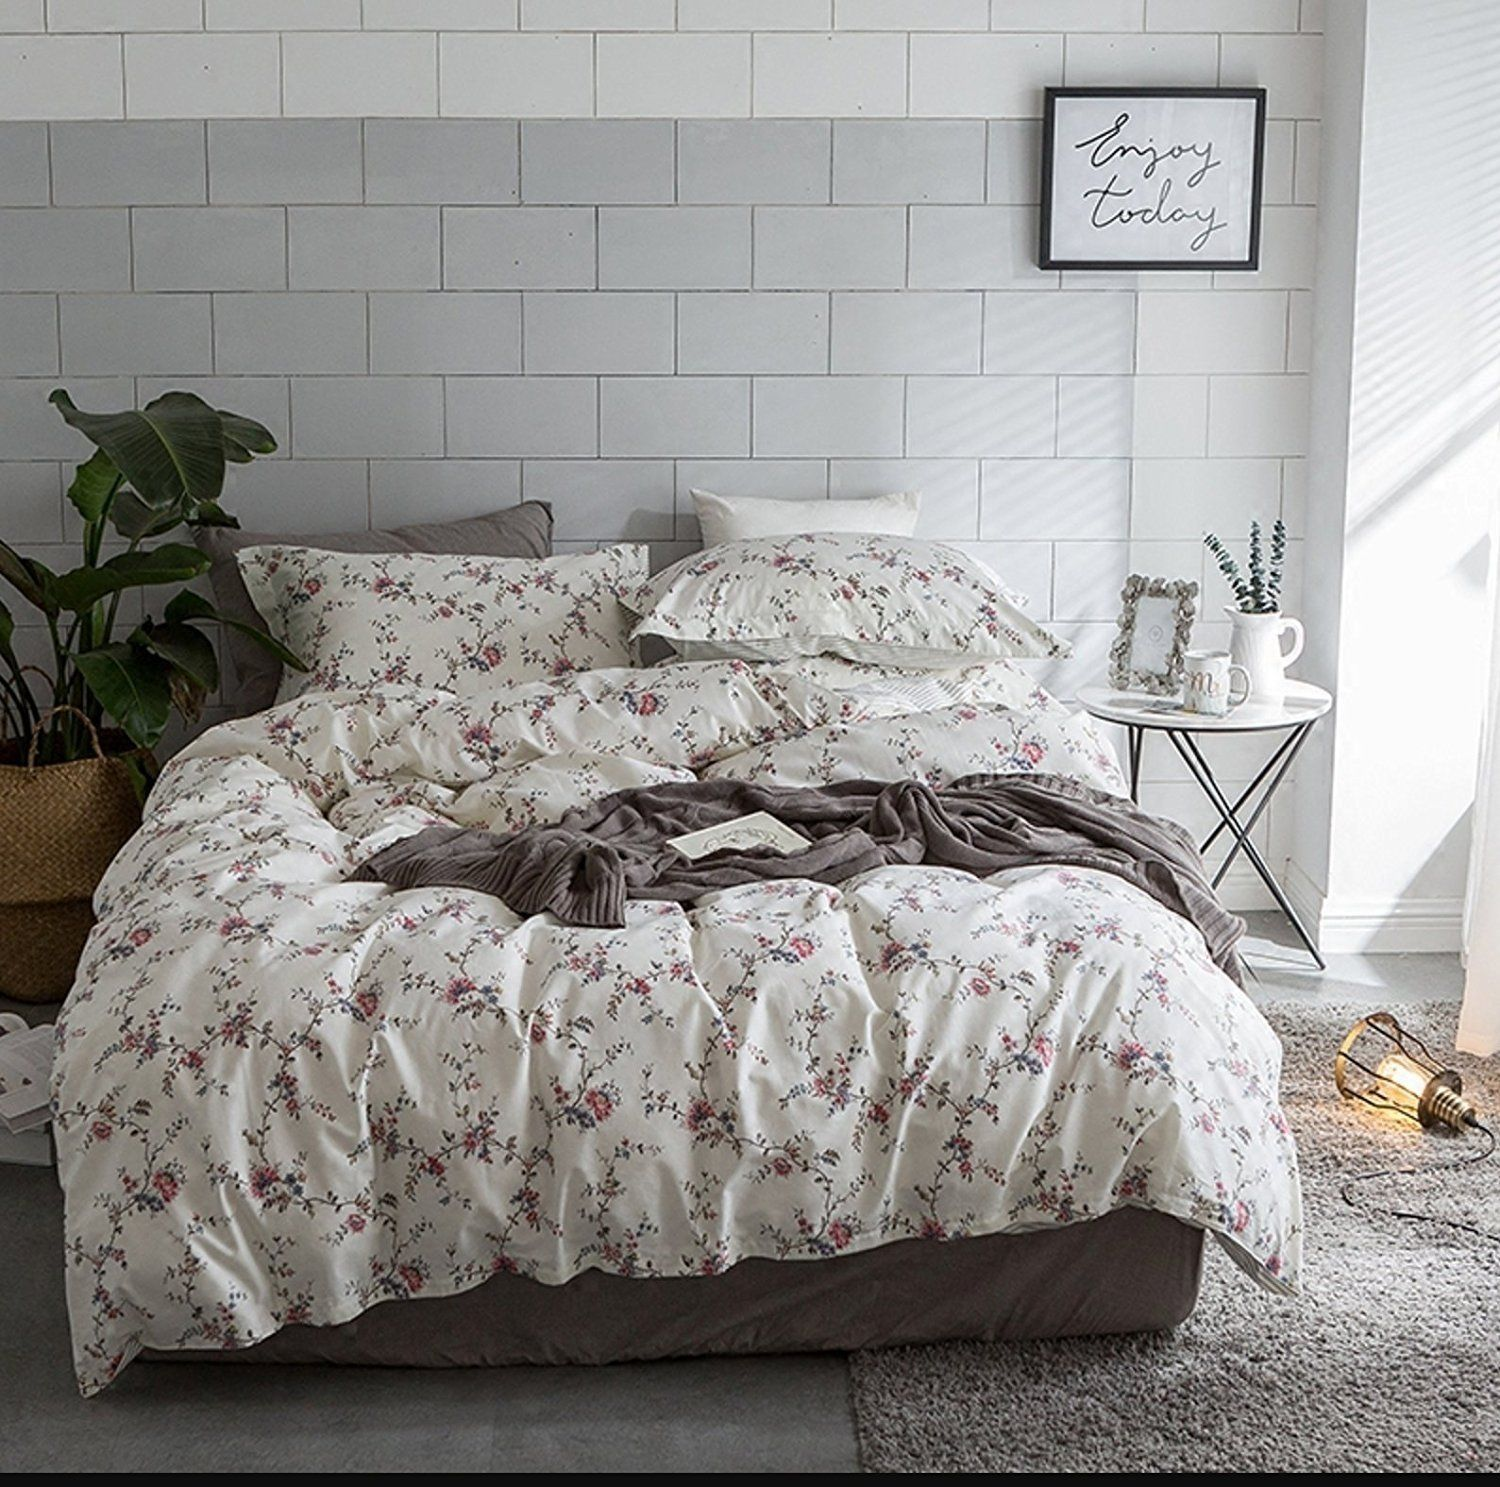 Cottage country style 3 piece duvet cover set multicolored roses peonies bouquet 100percent cotton shabby chic